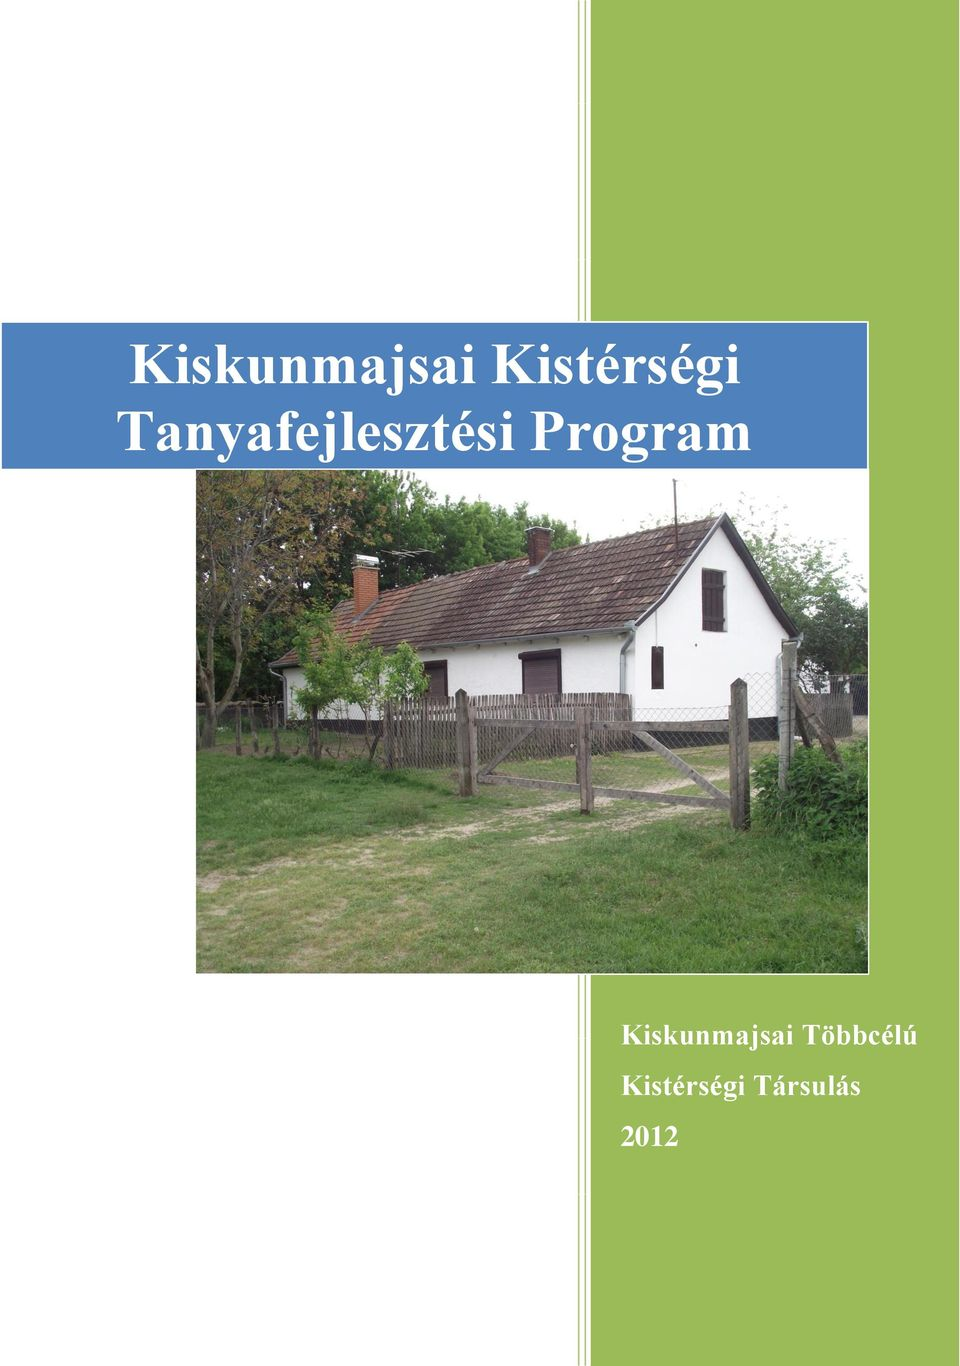 Program Kiskunmajsai